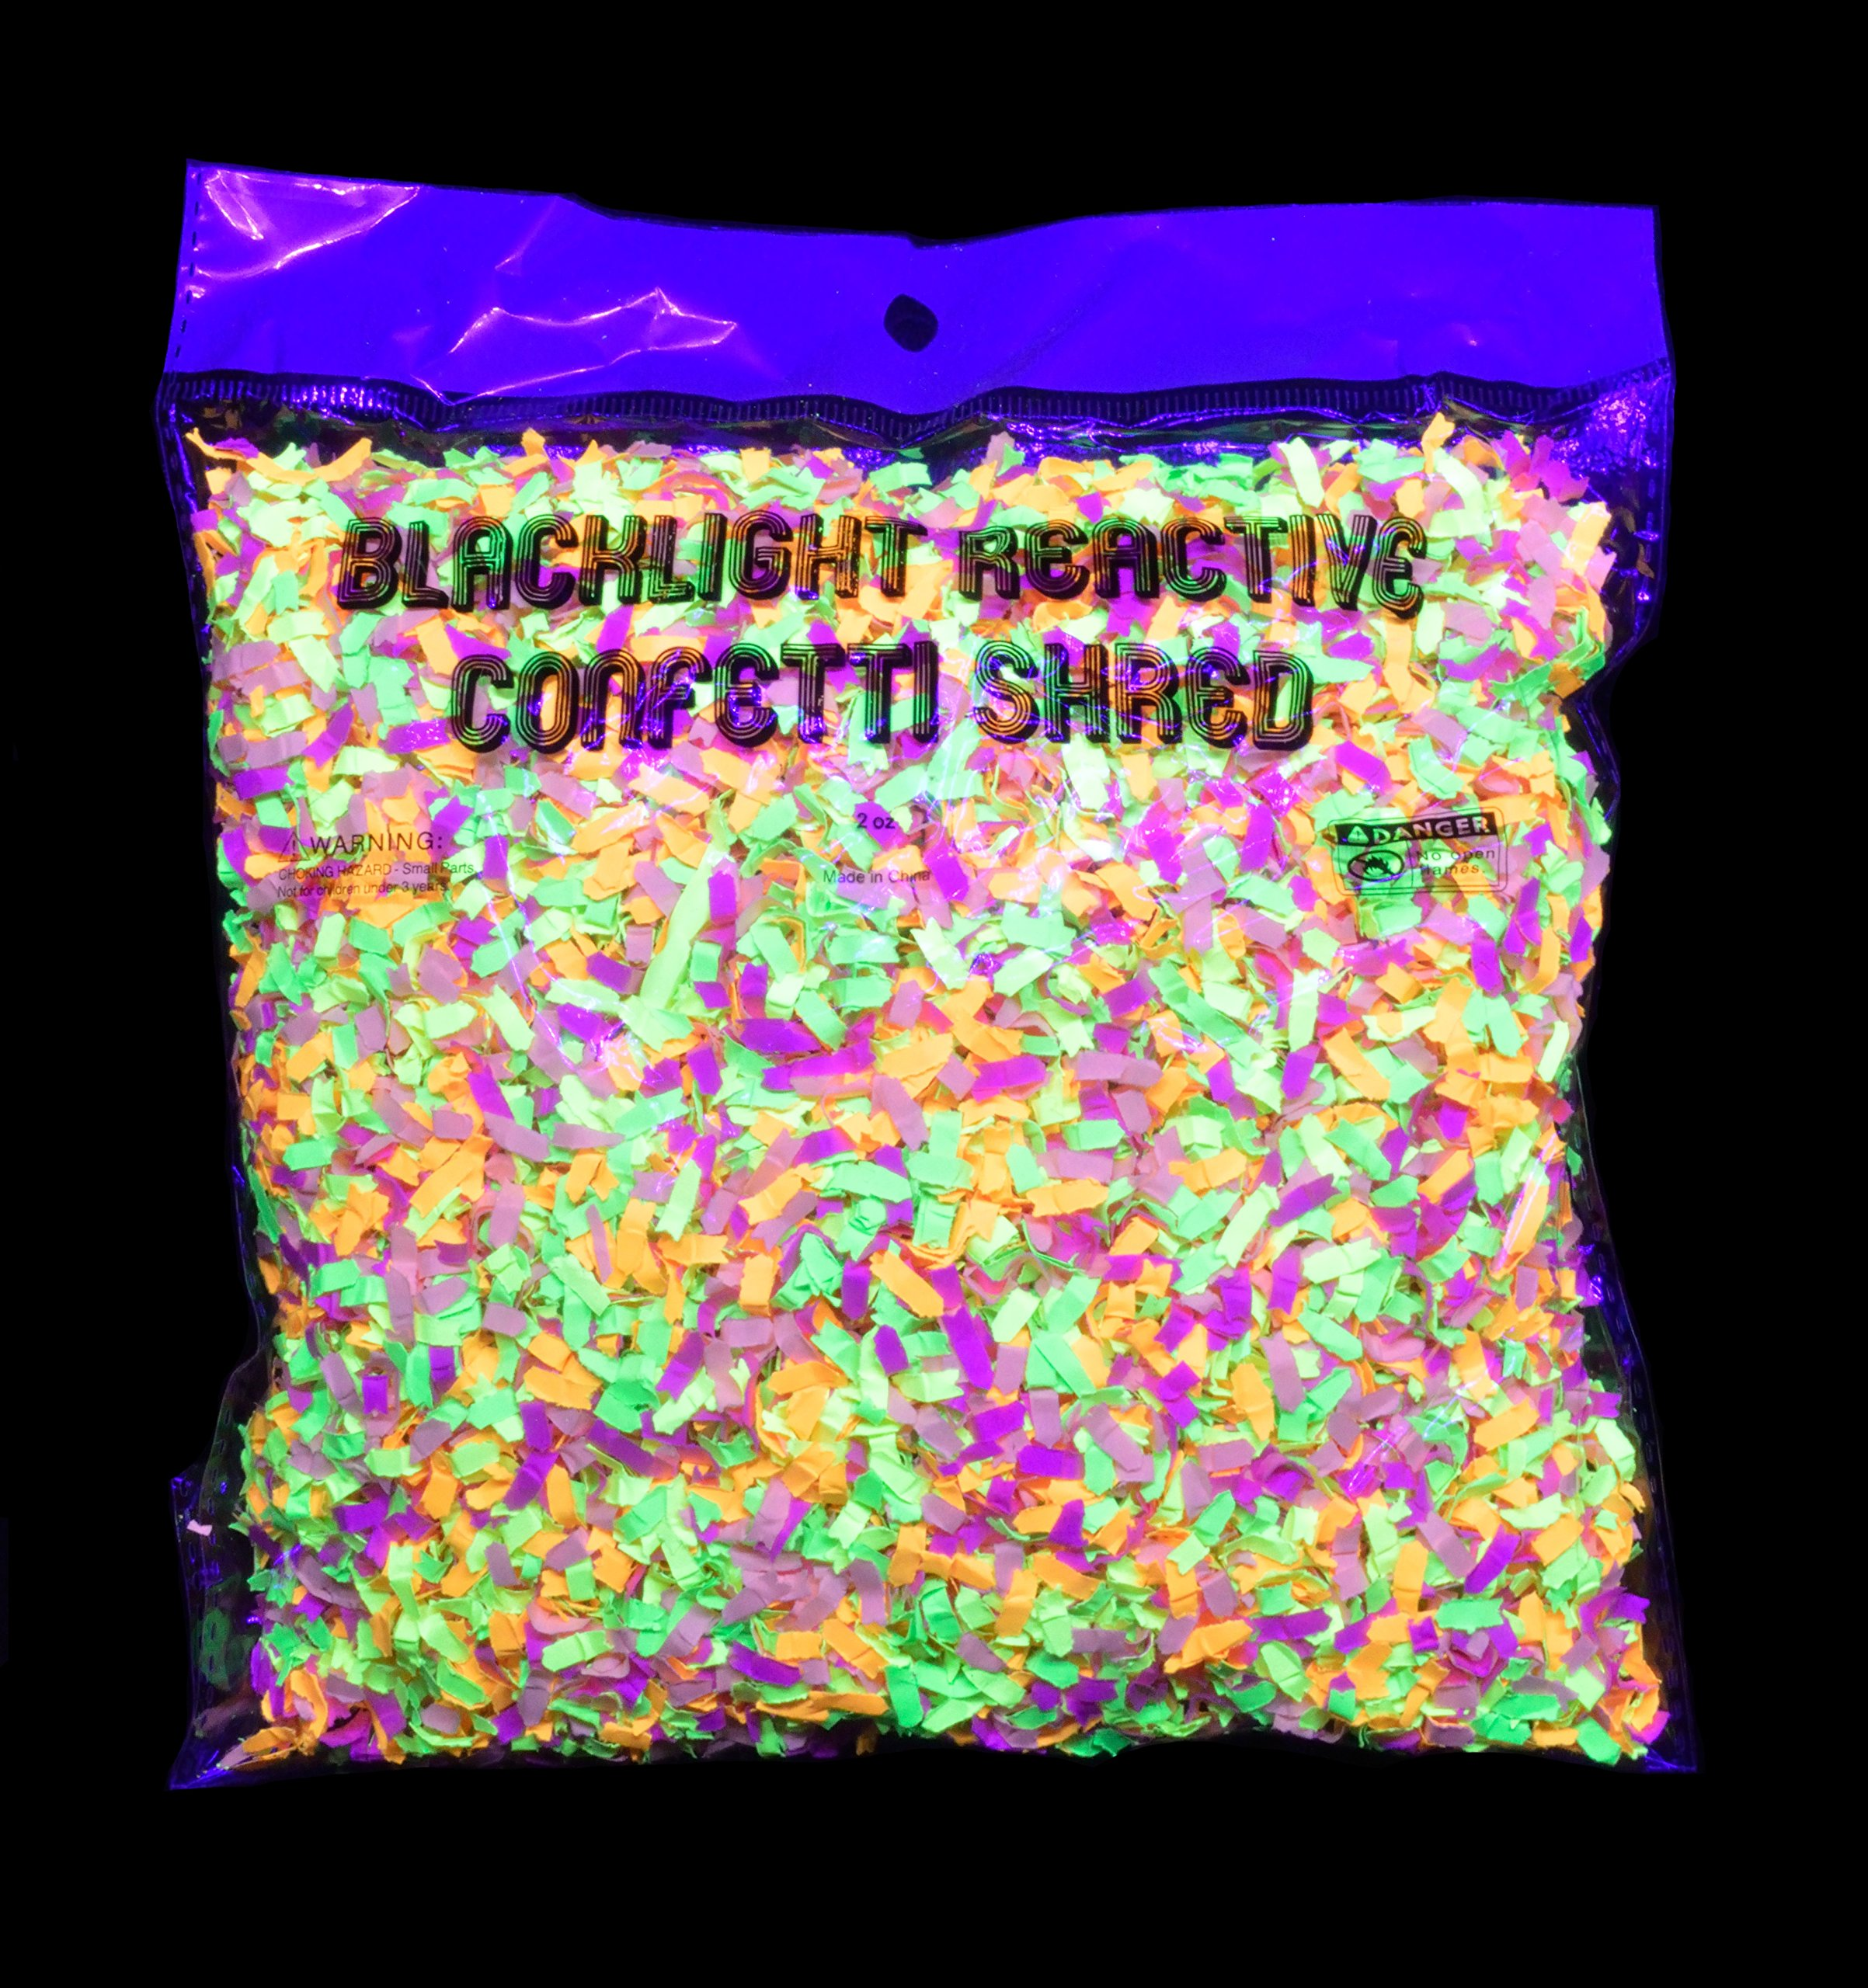 Blacklight Reactive Neon Confetti Bright Flourescent Colors Glows with UV Light Party Favors, Decorations, Birthday Parties (2oz)